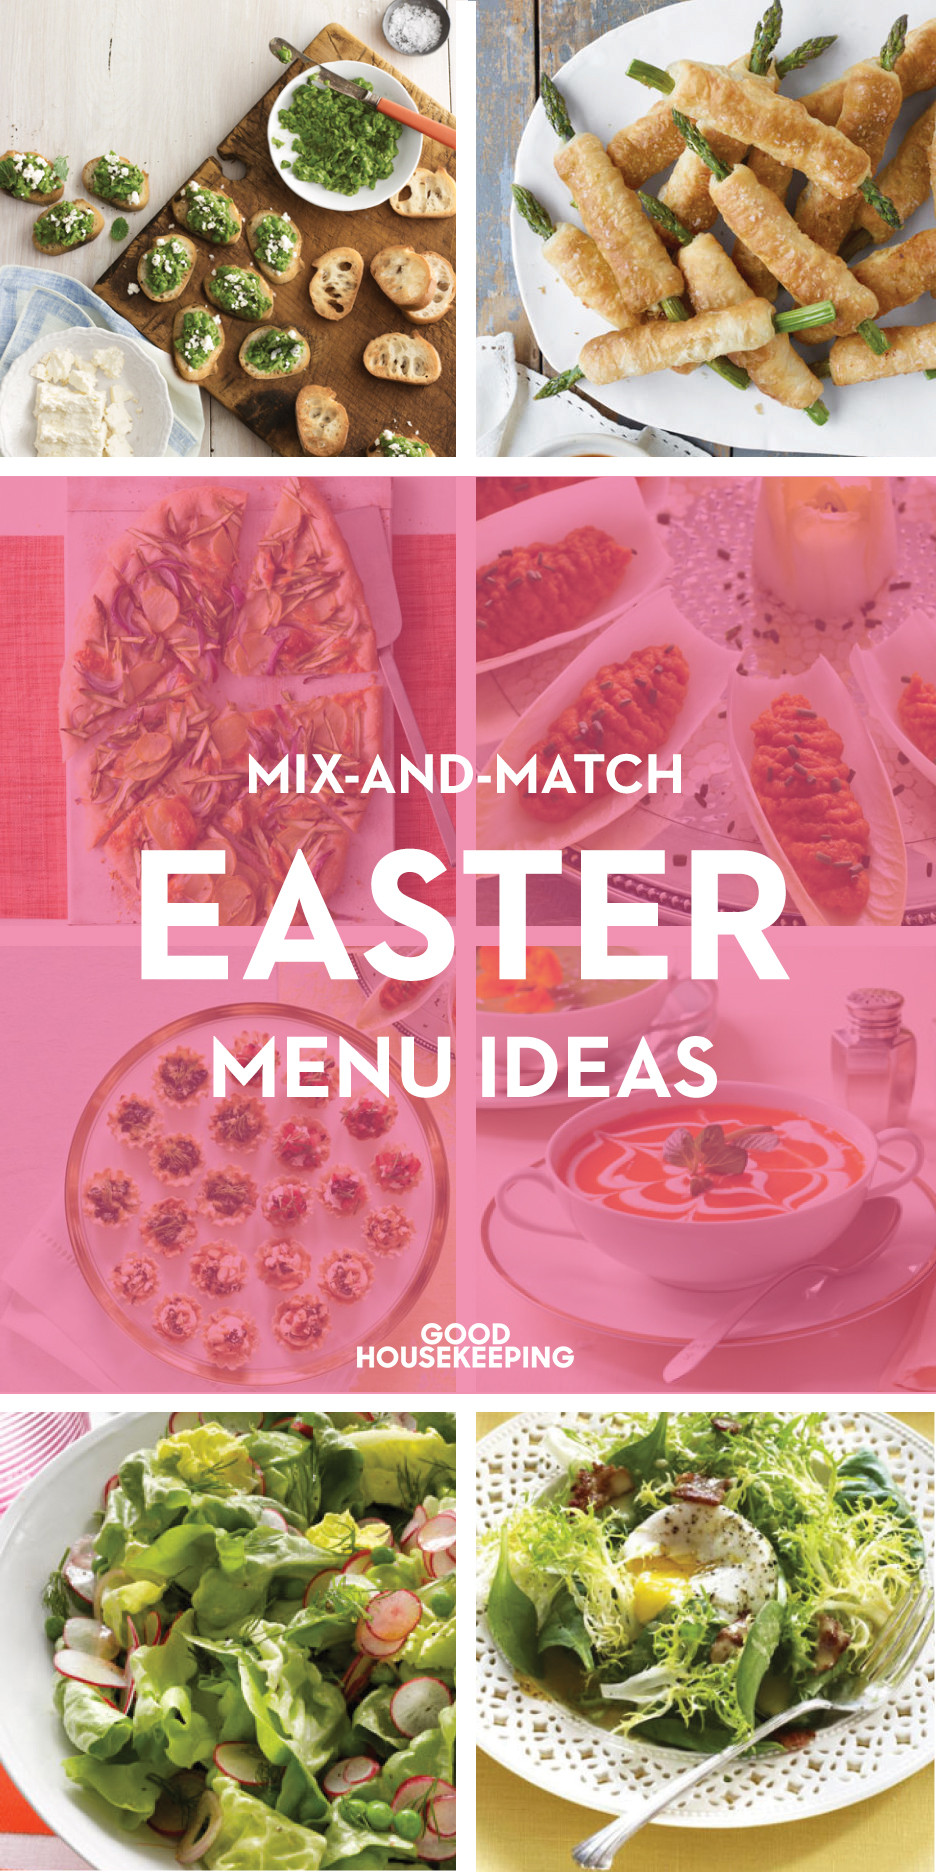 Menu For Easter Dinner  65 Easter Dinner Menu Ideas Easy Recipes for Easter Dinner